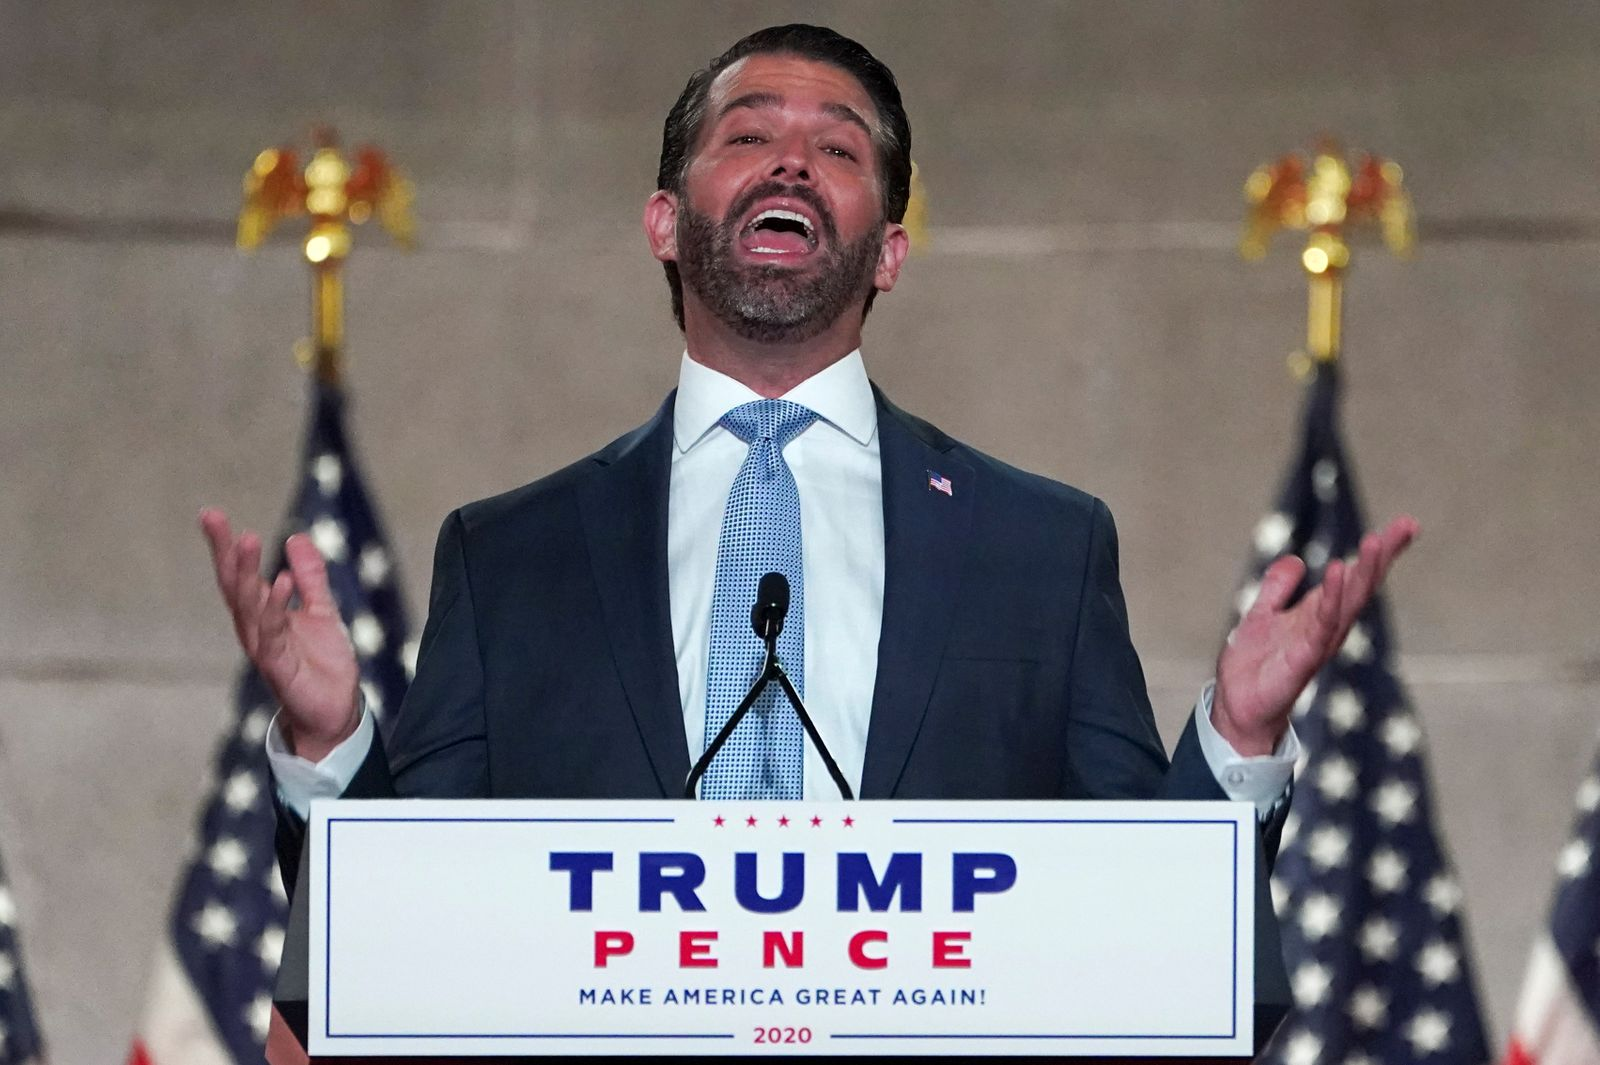 Donald Trump Jr. gives a pre-recorded speech to the largely virtual Republican National Convention from Washington